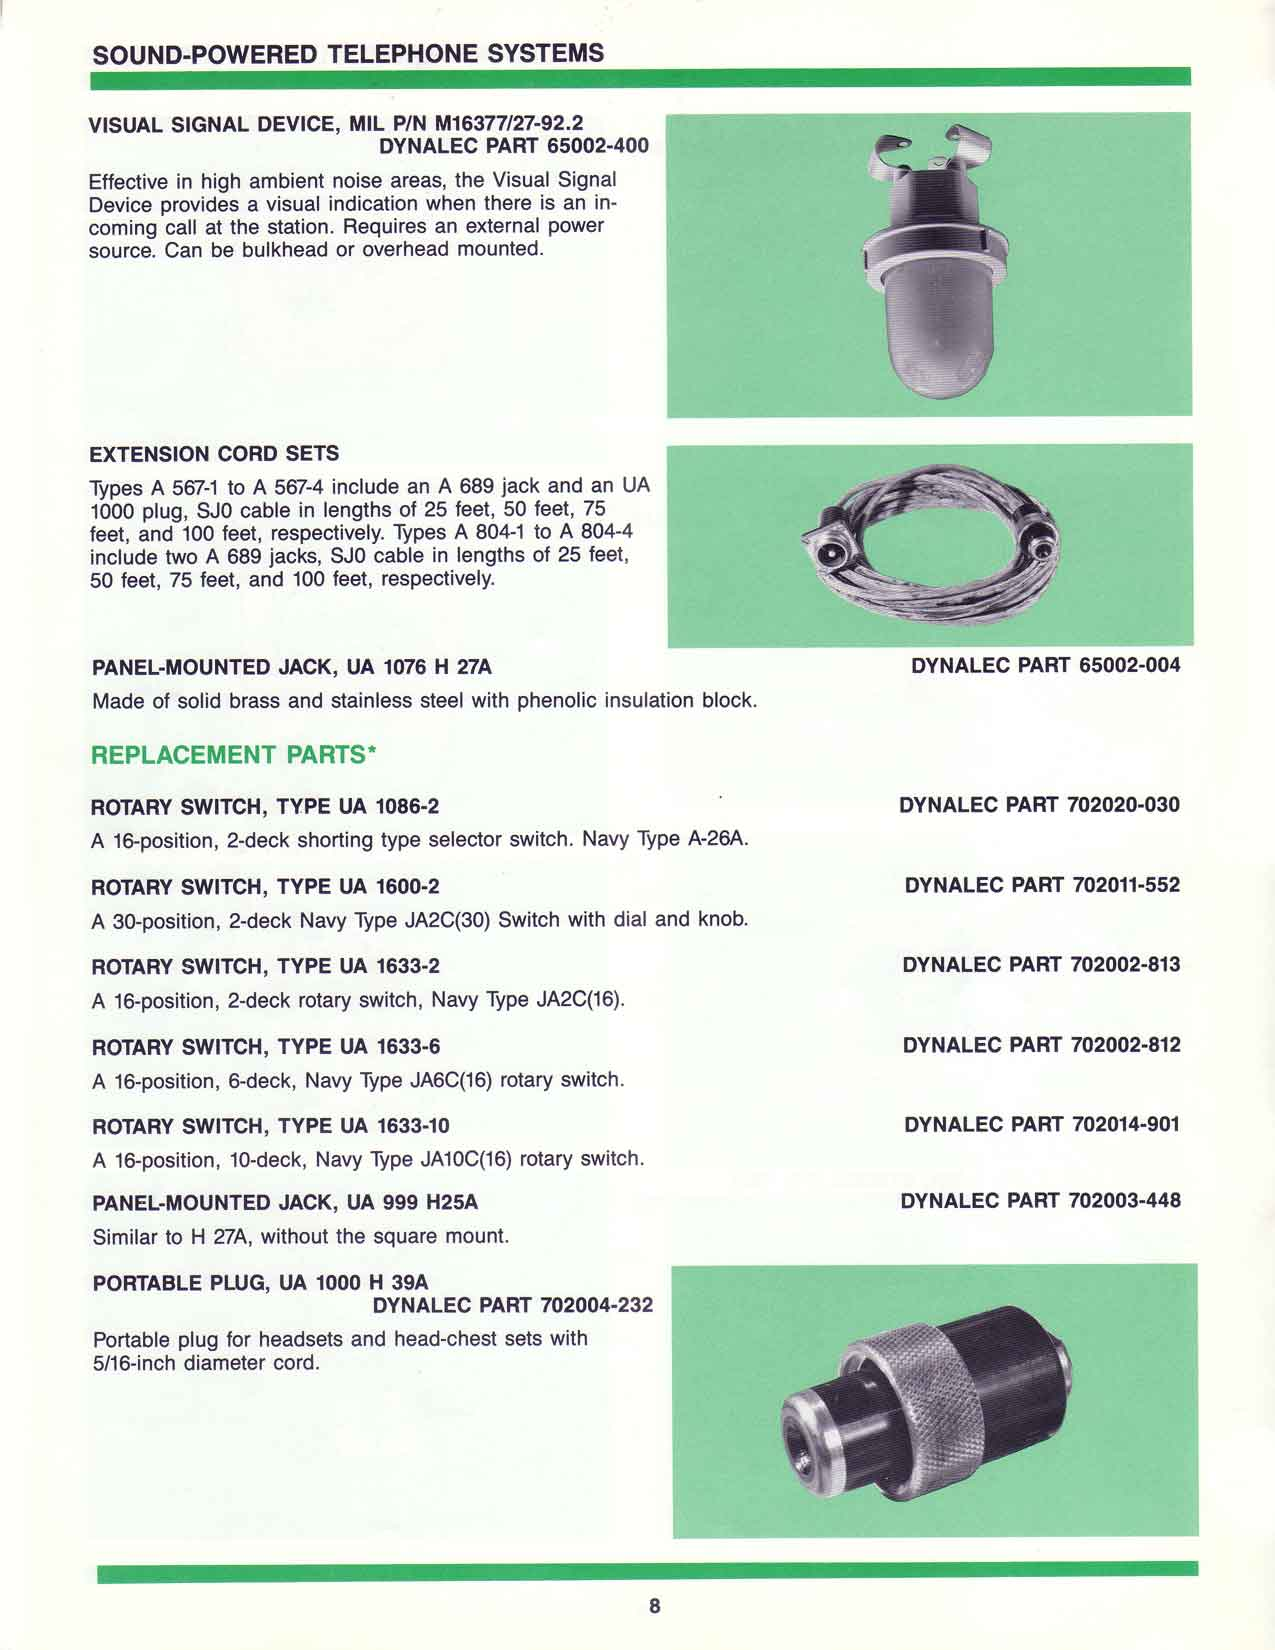 sound powered telephone systems, parts, Dynalec